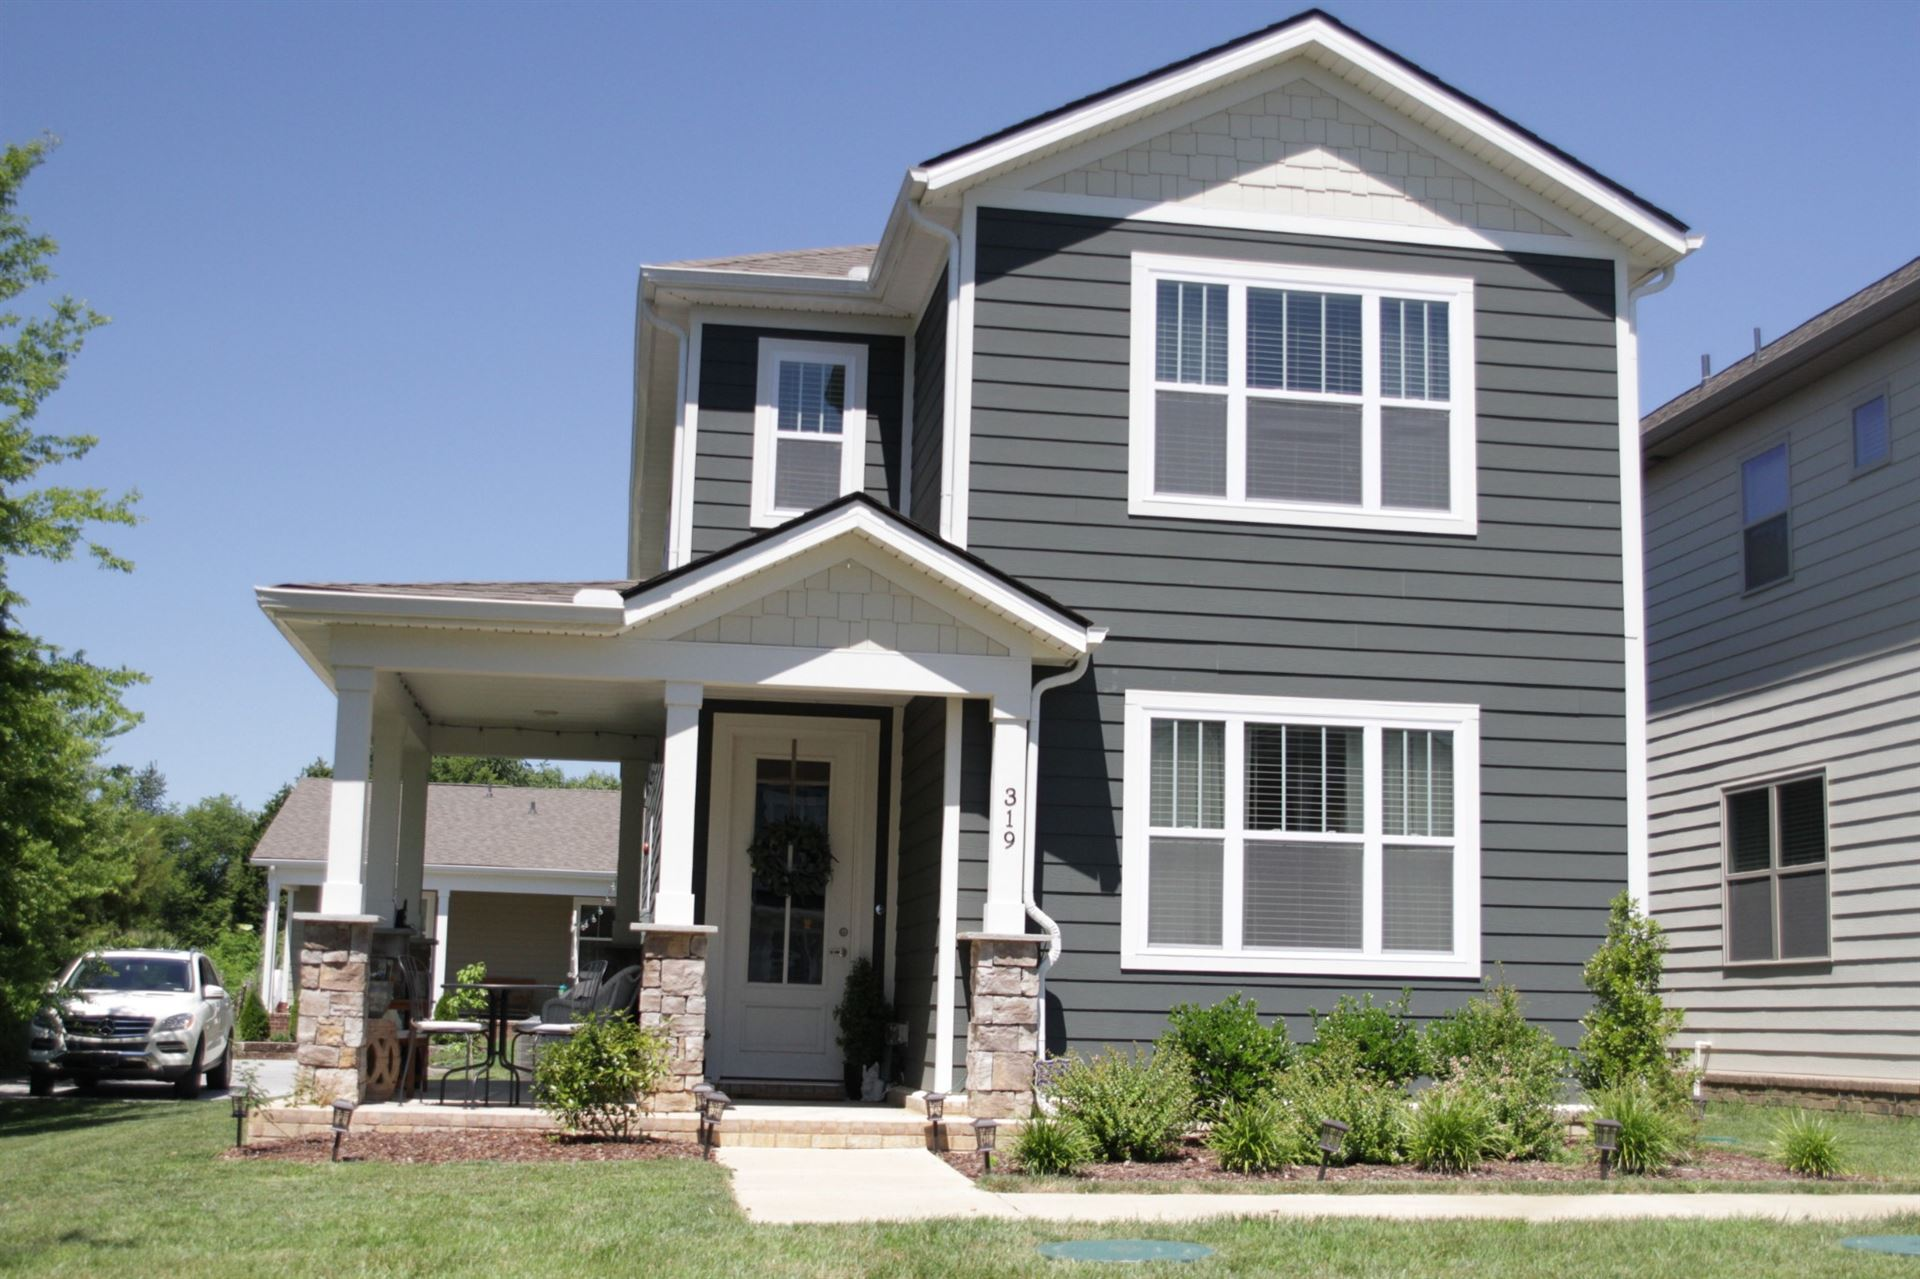 Photo of 319 Imperial Ct, Pleasant View, TN 37146 (MLS # 2168912)